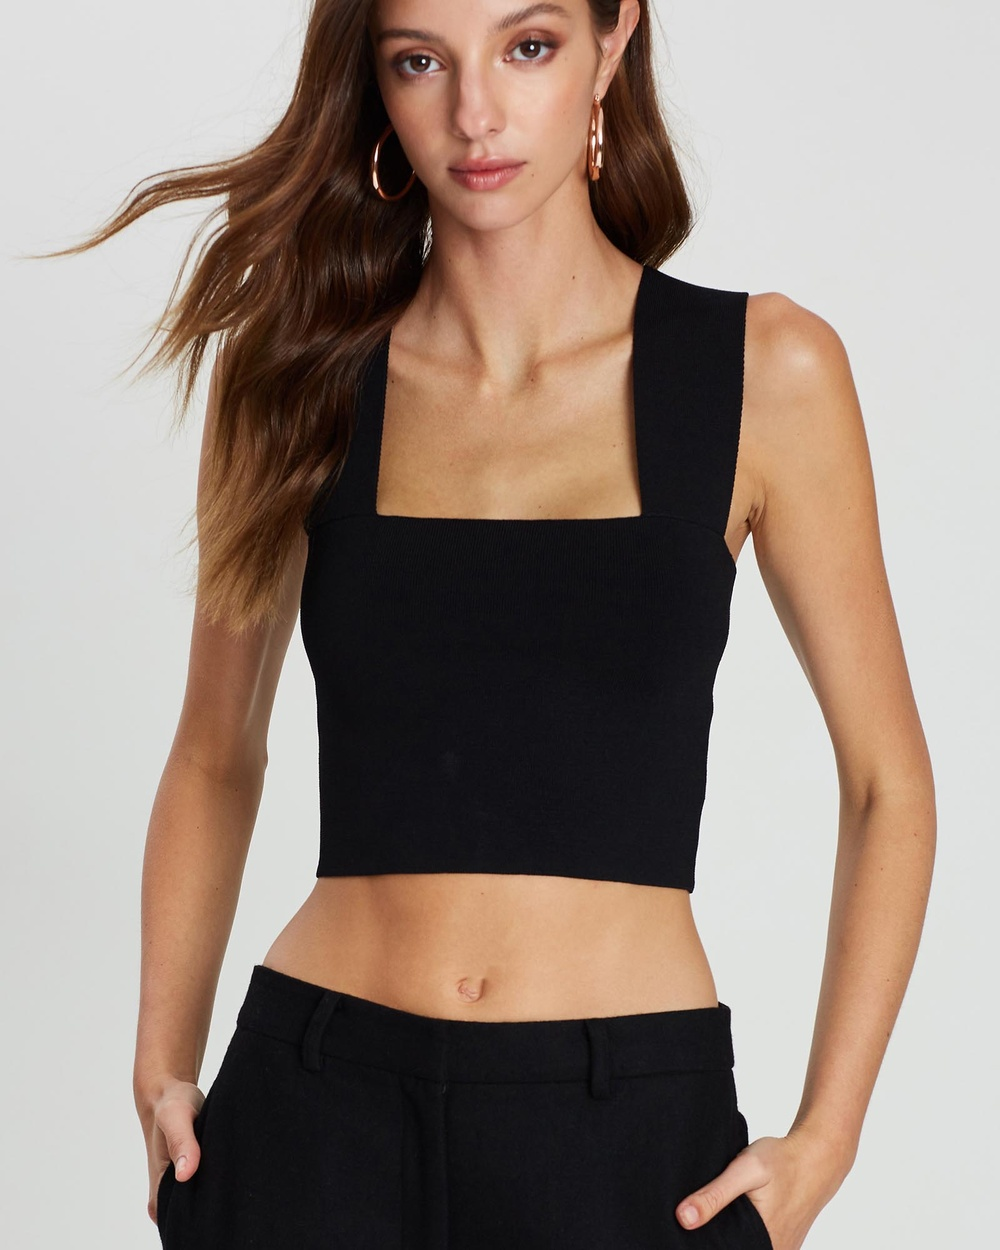 Friend of Audrey Nadia Cropped Knit Top Cropped tops Black Nadia Cropped Knit Top